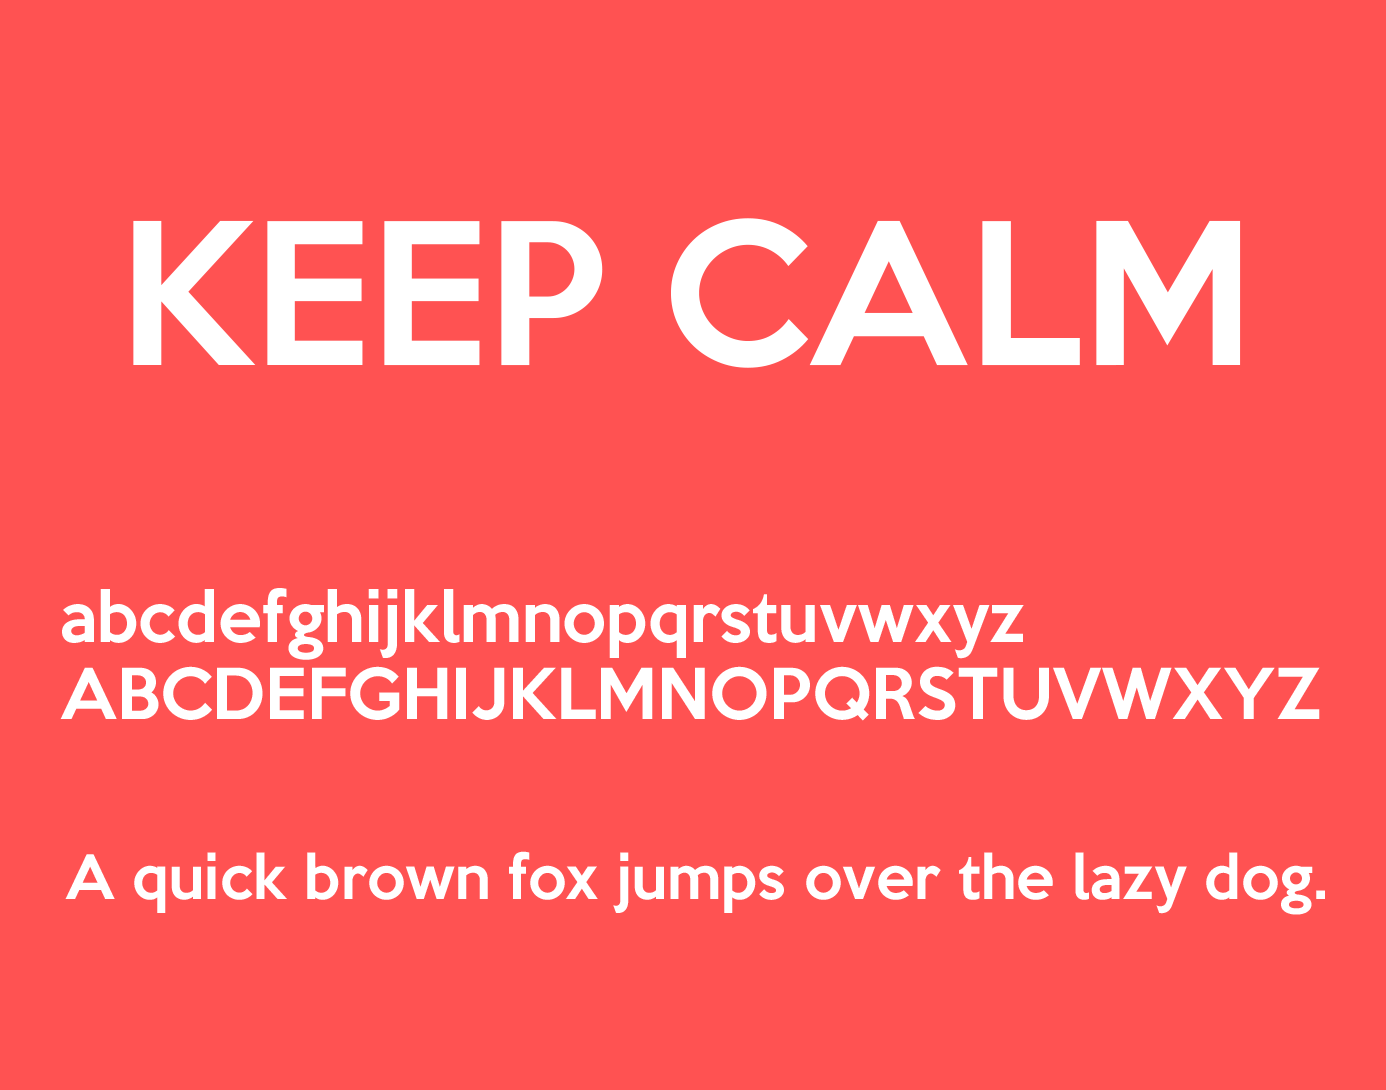 https://fontclarity.com/wp-content/uploads/2019/09/keep-calm-font-download-0.png Free Download